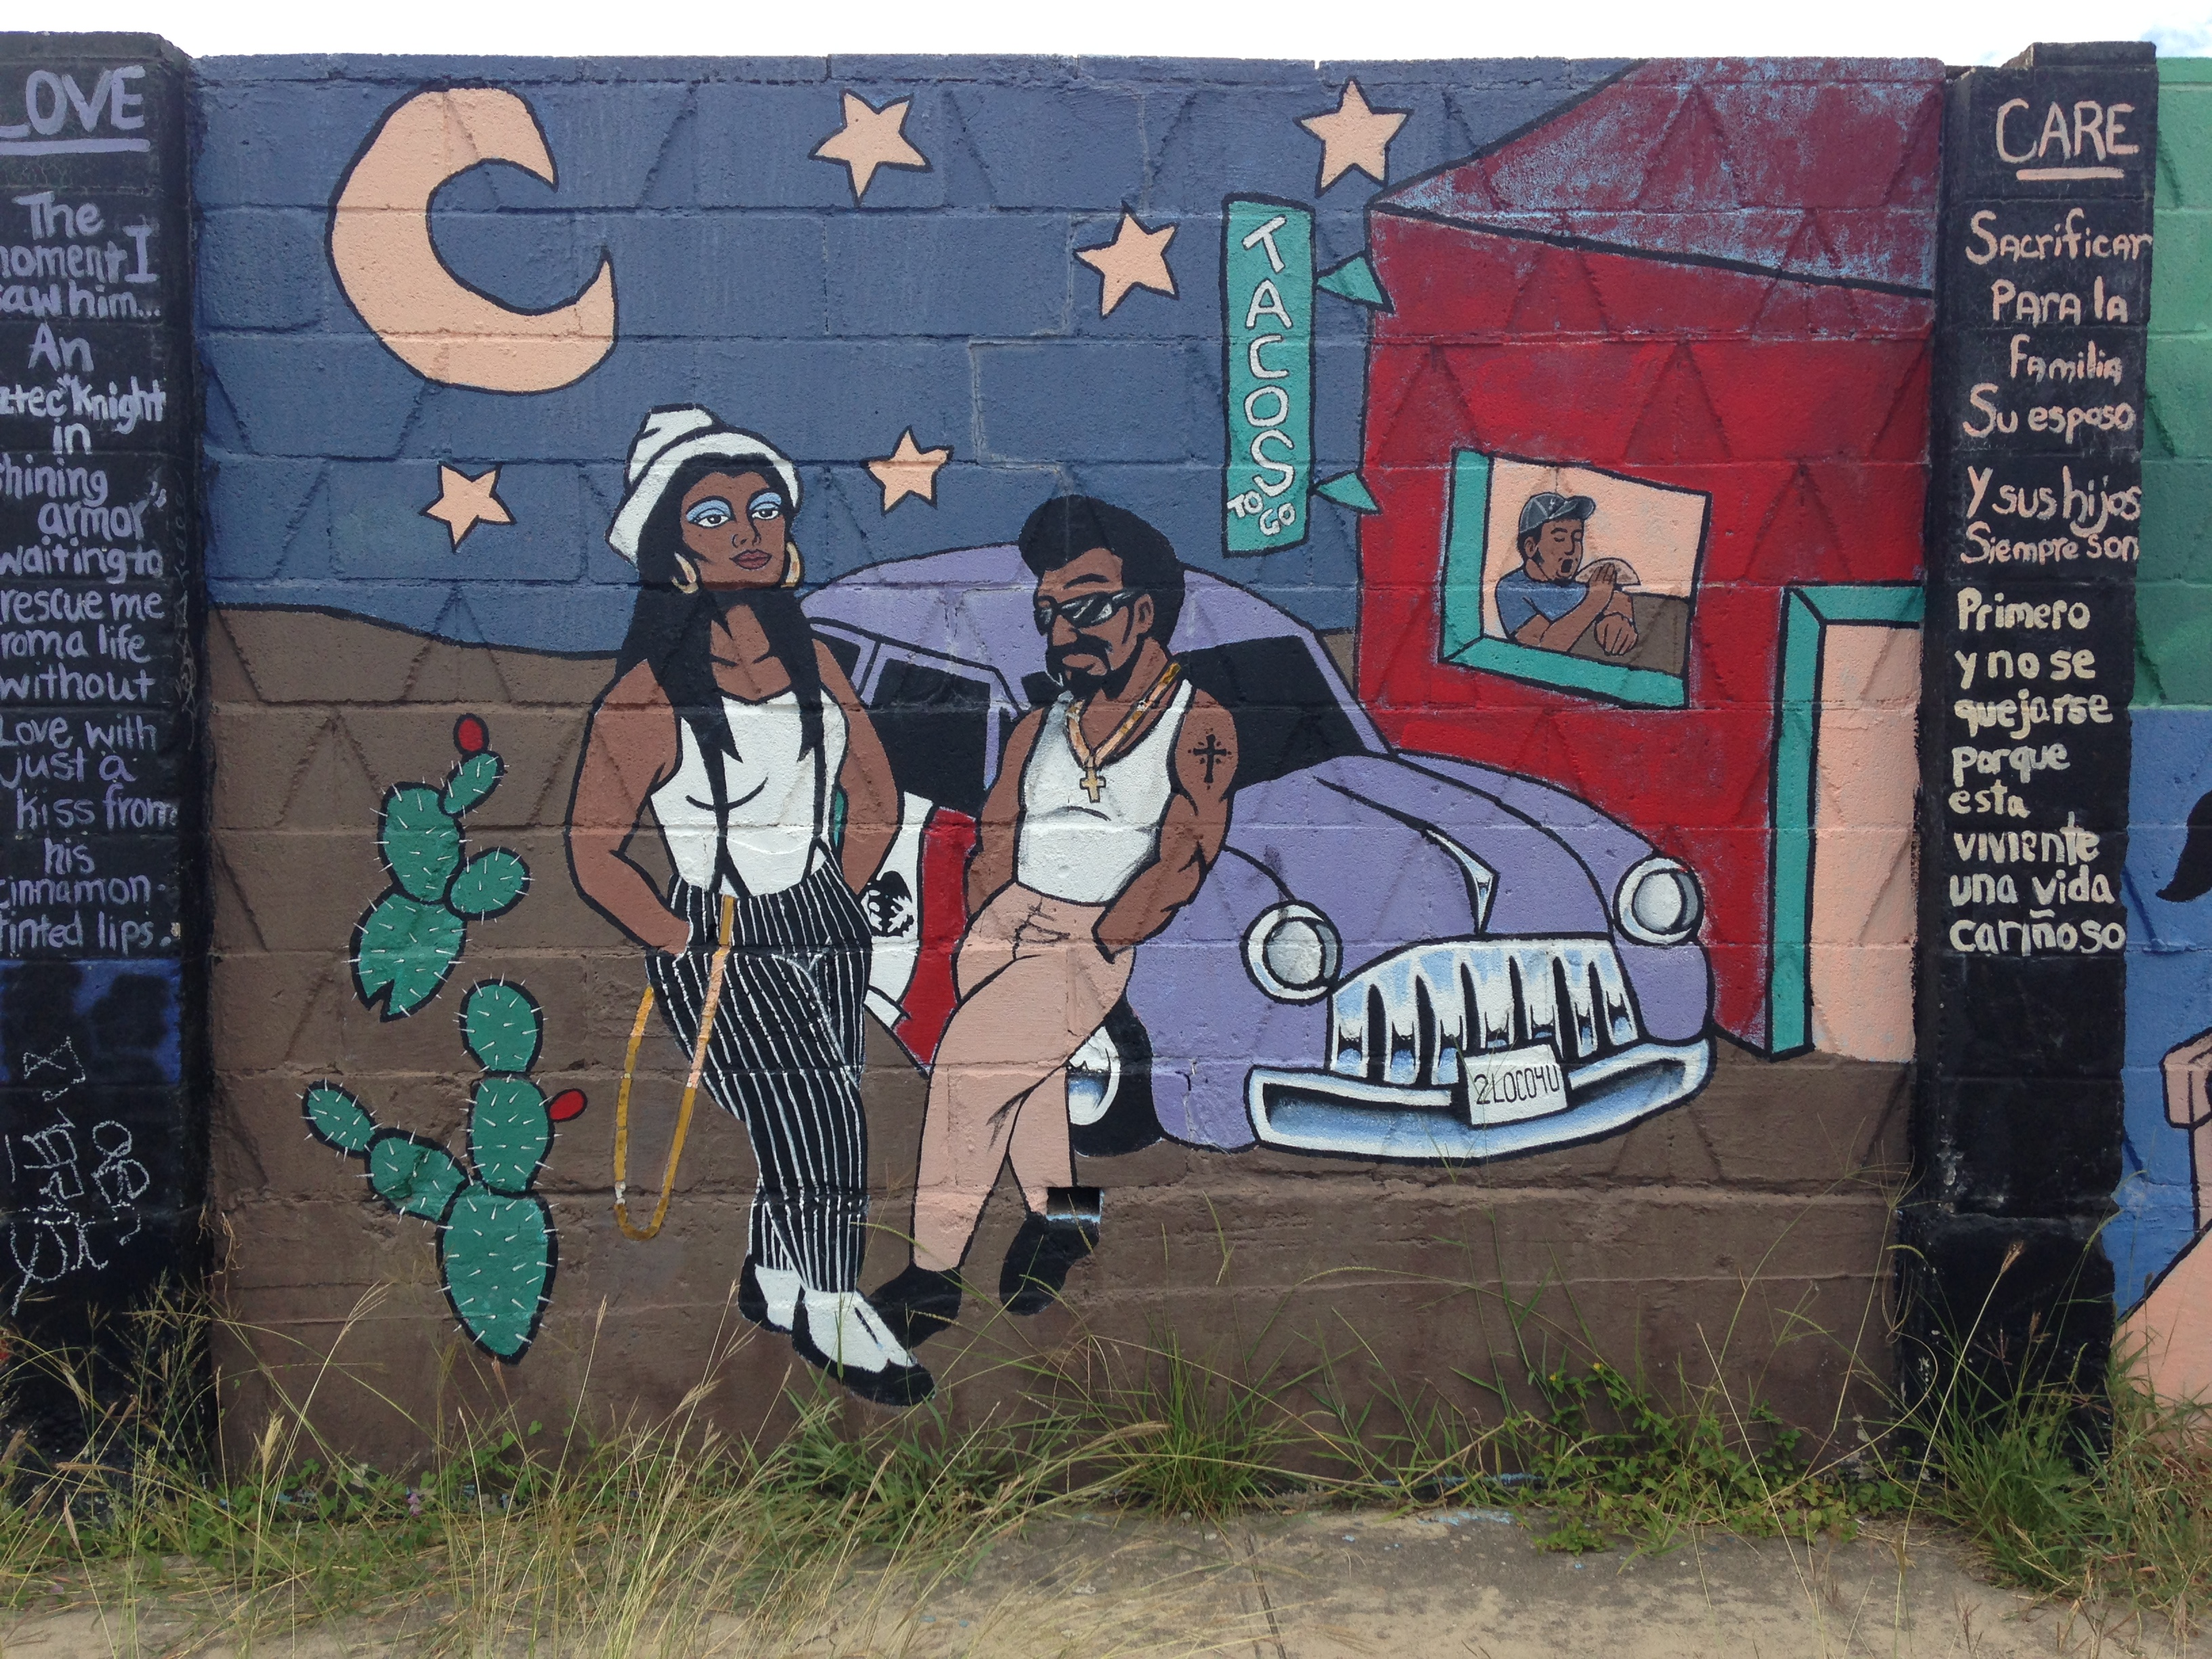 West_Side_Murals_Tacos_To_Go